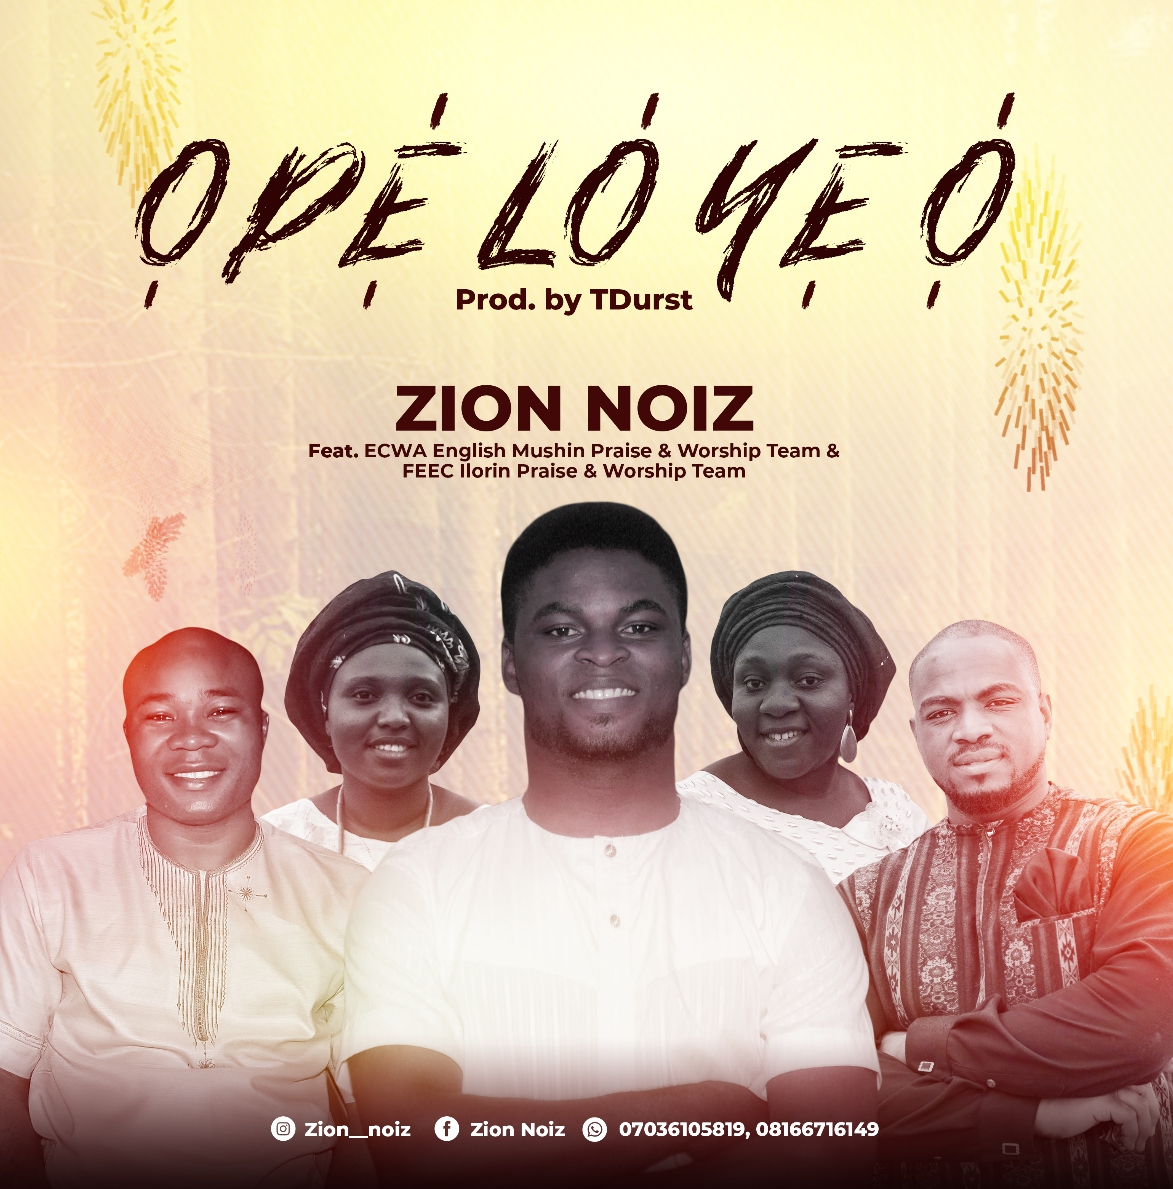 OPE LO YE O (You Deserve It All) - Zion Noiz